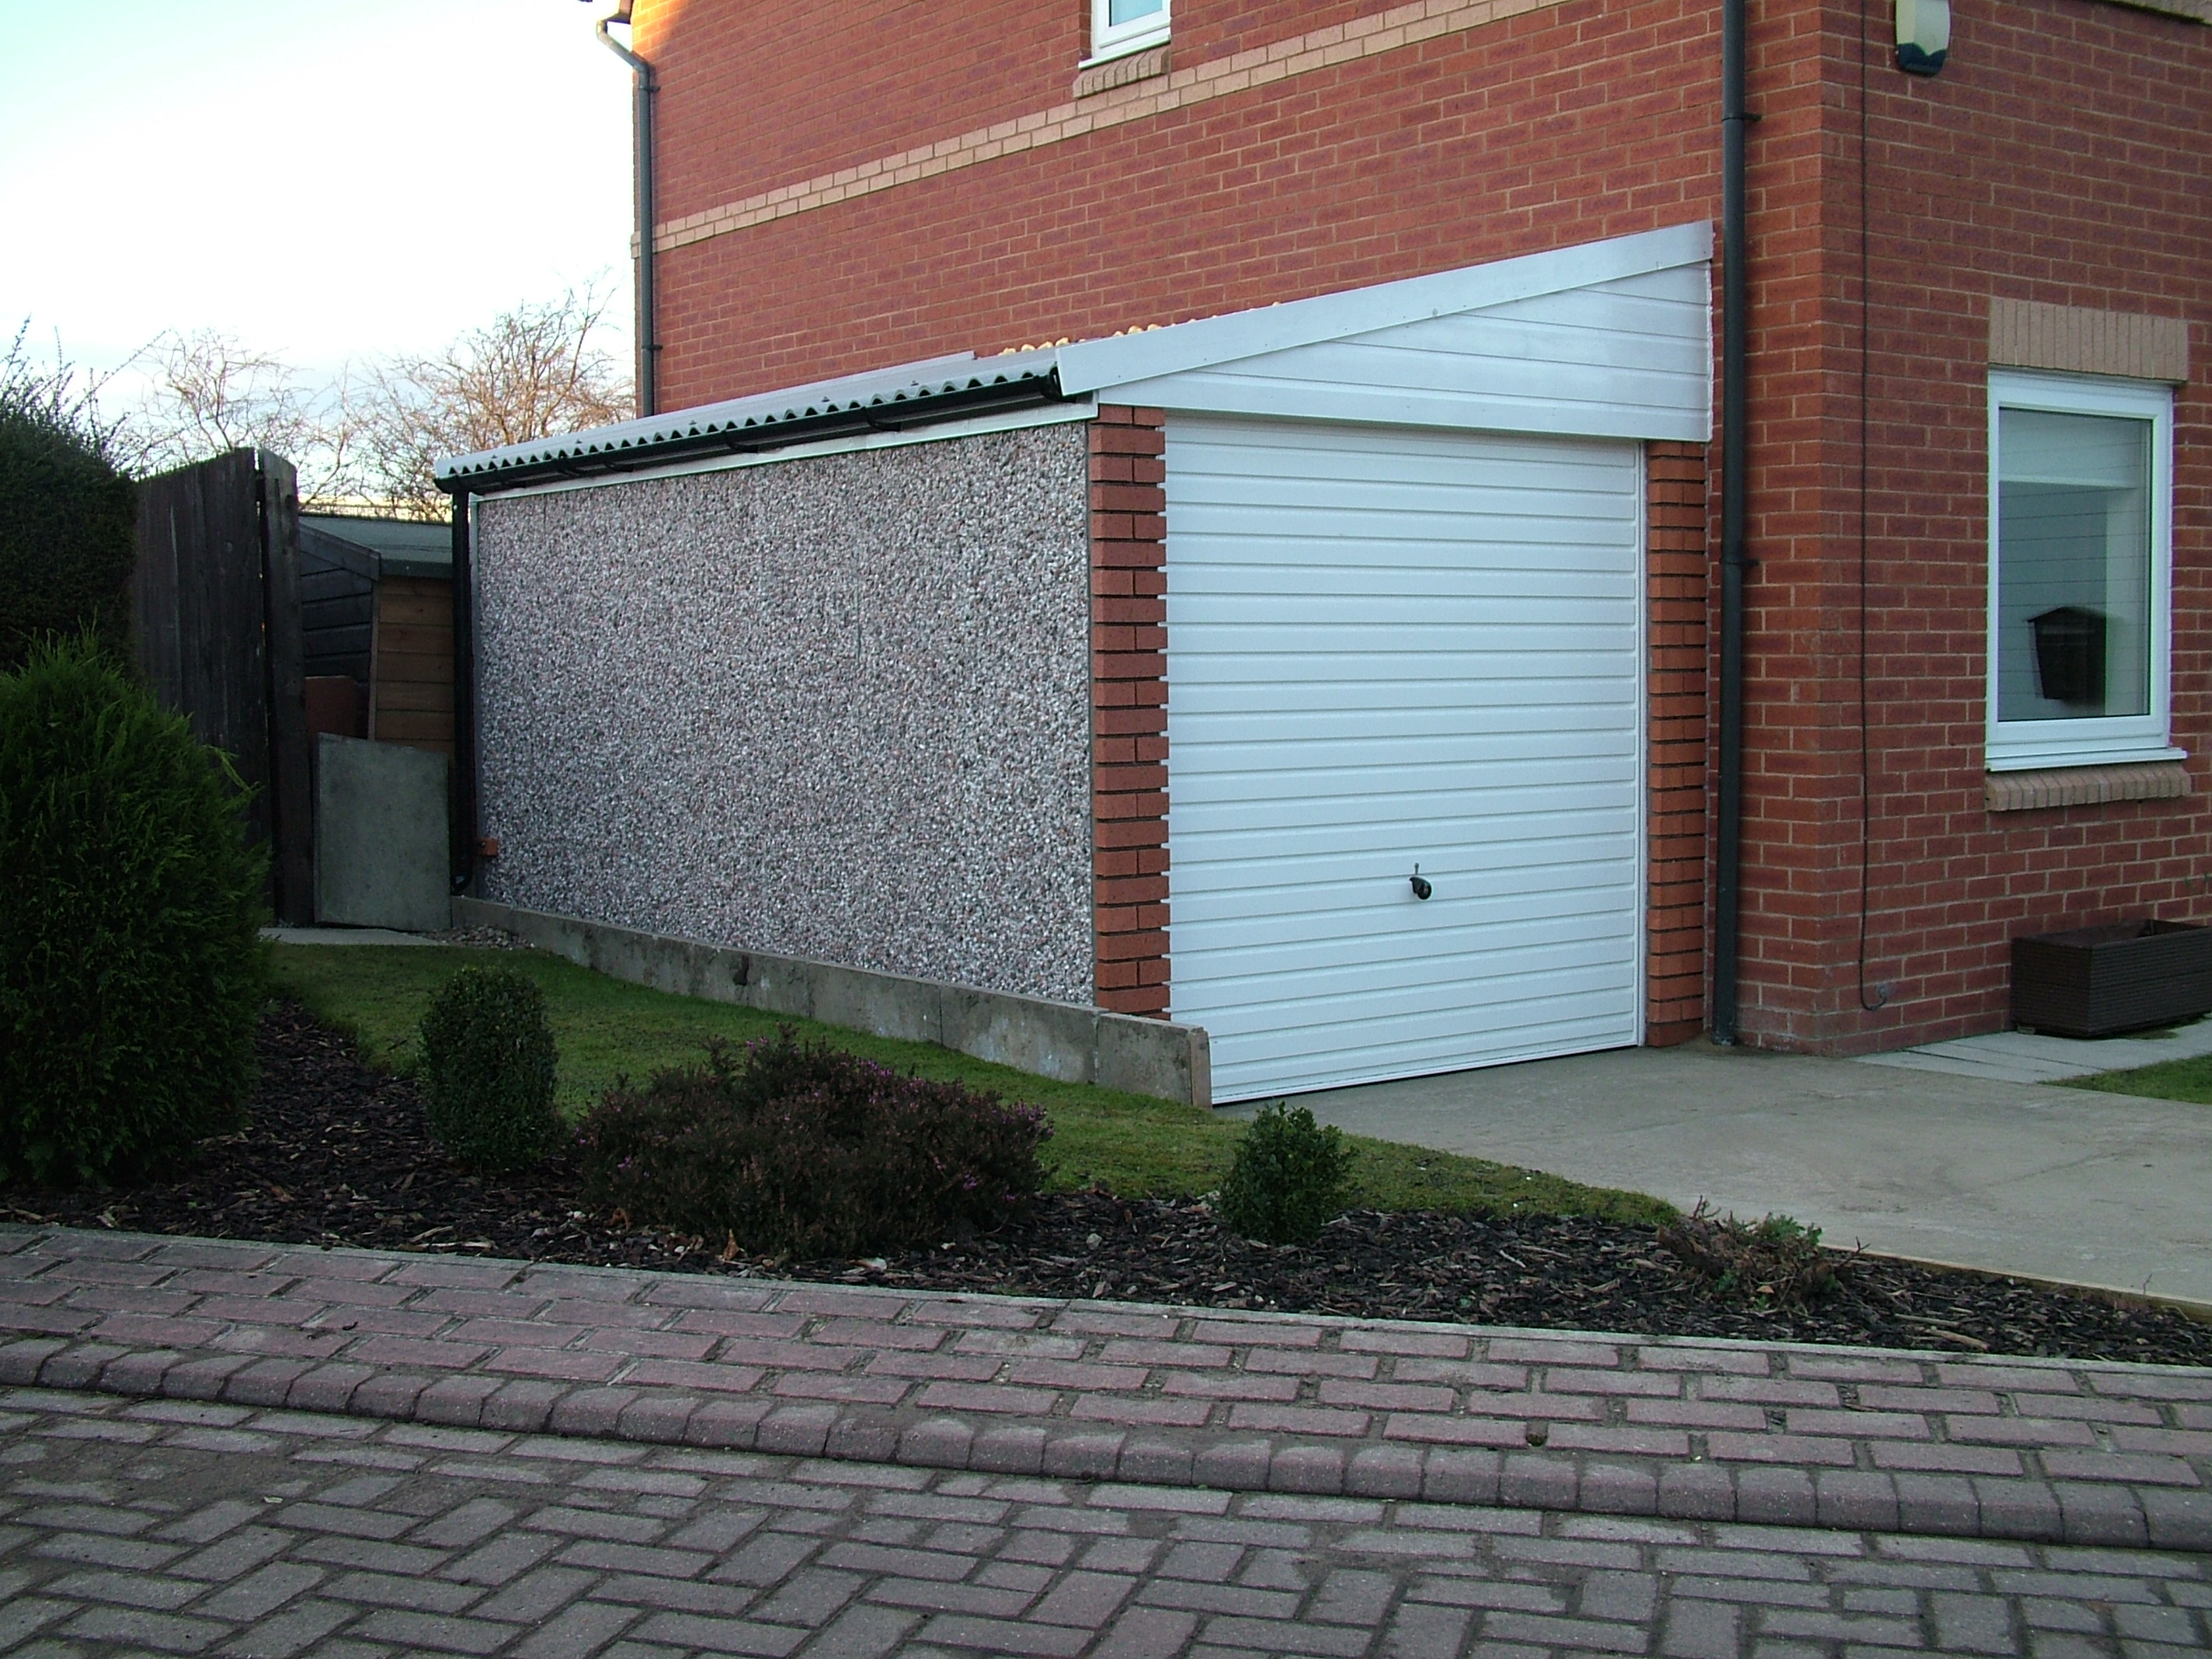 How much to build a garage on side of the house uk - When building a house ...